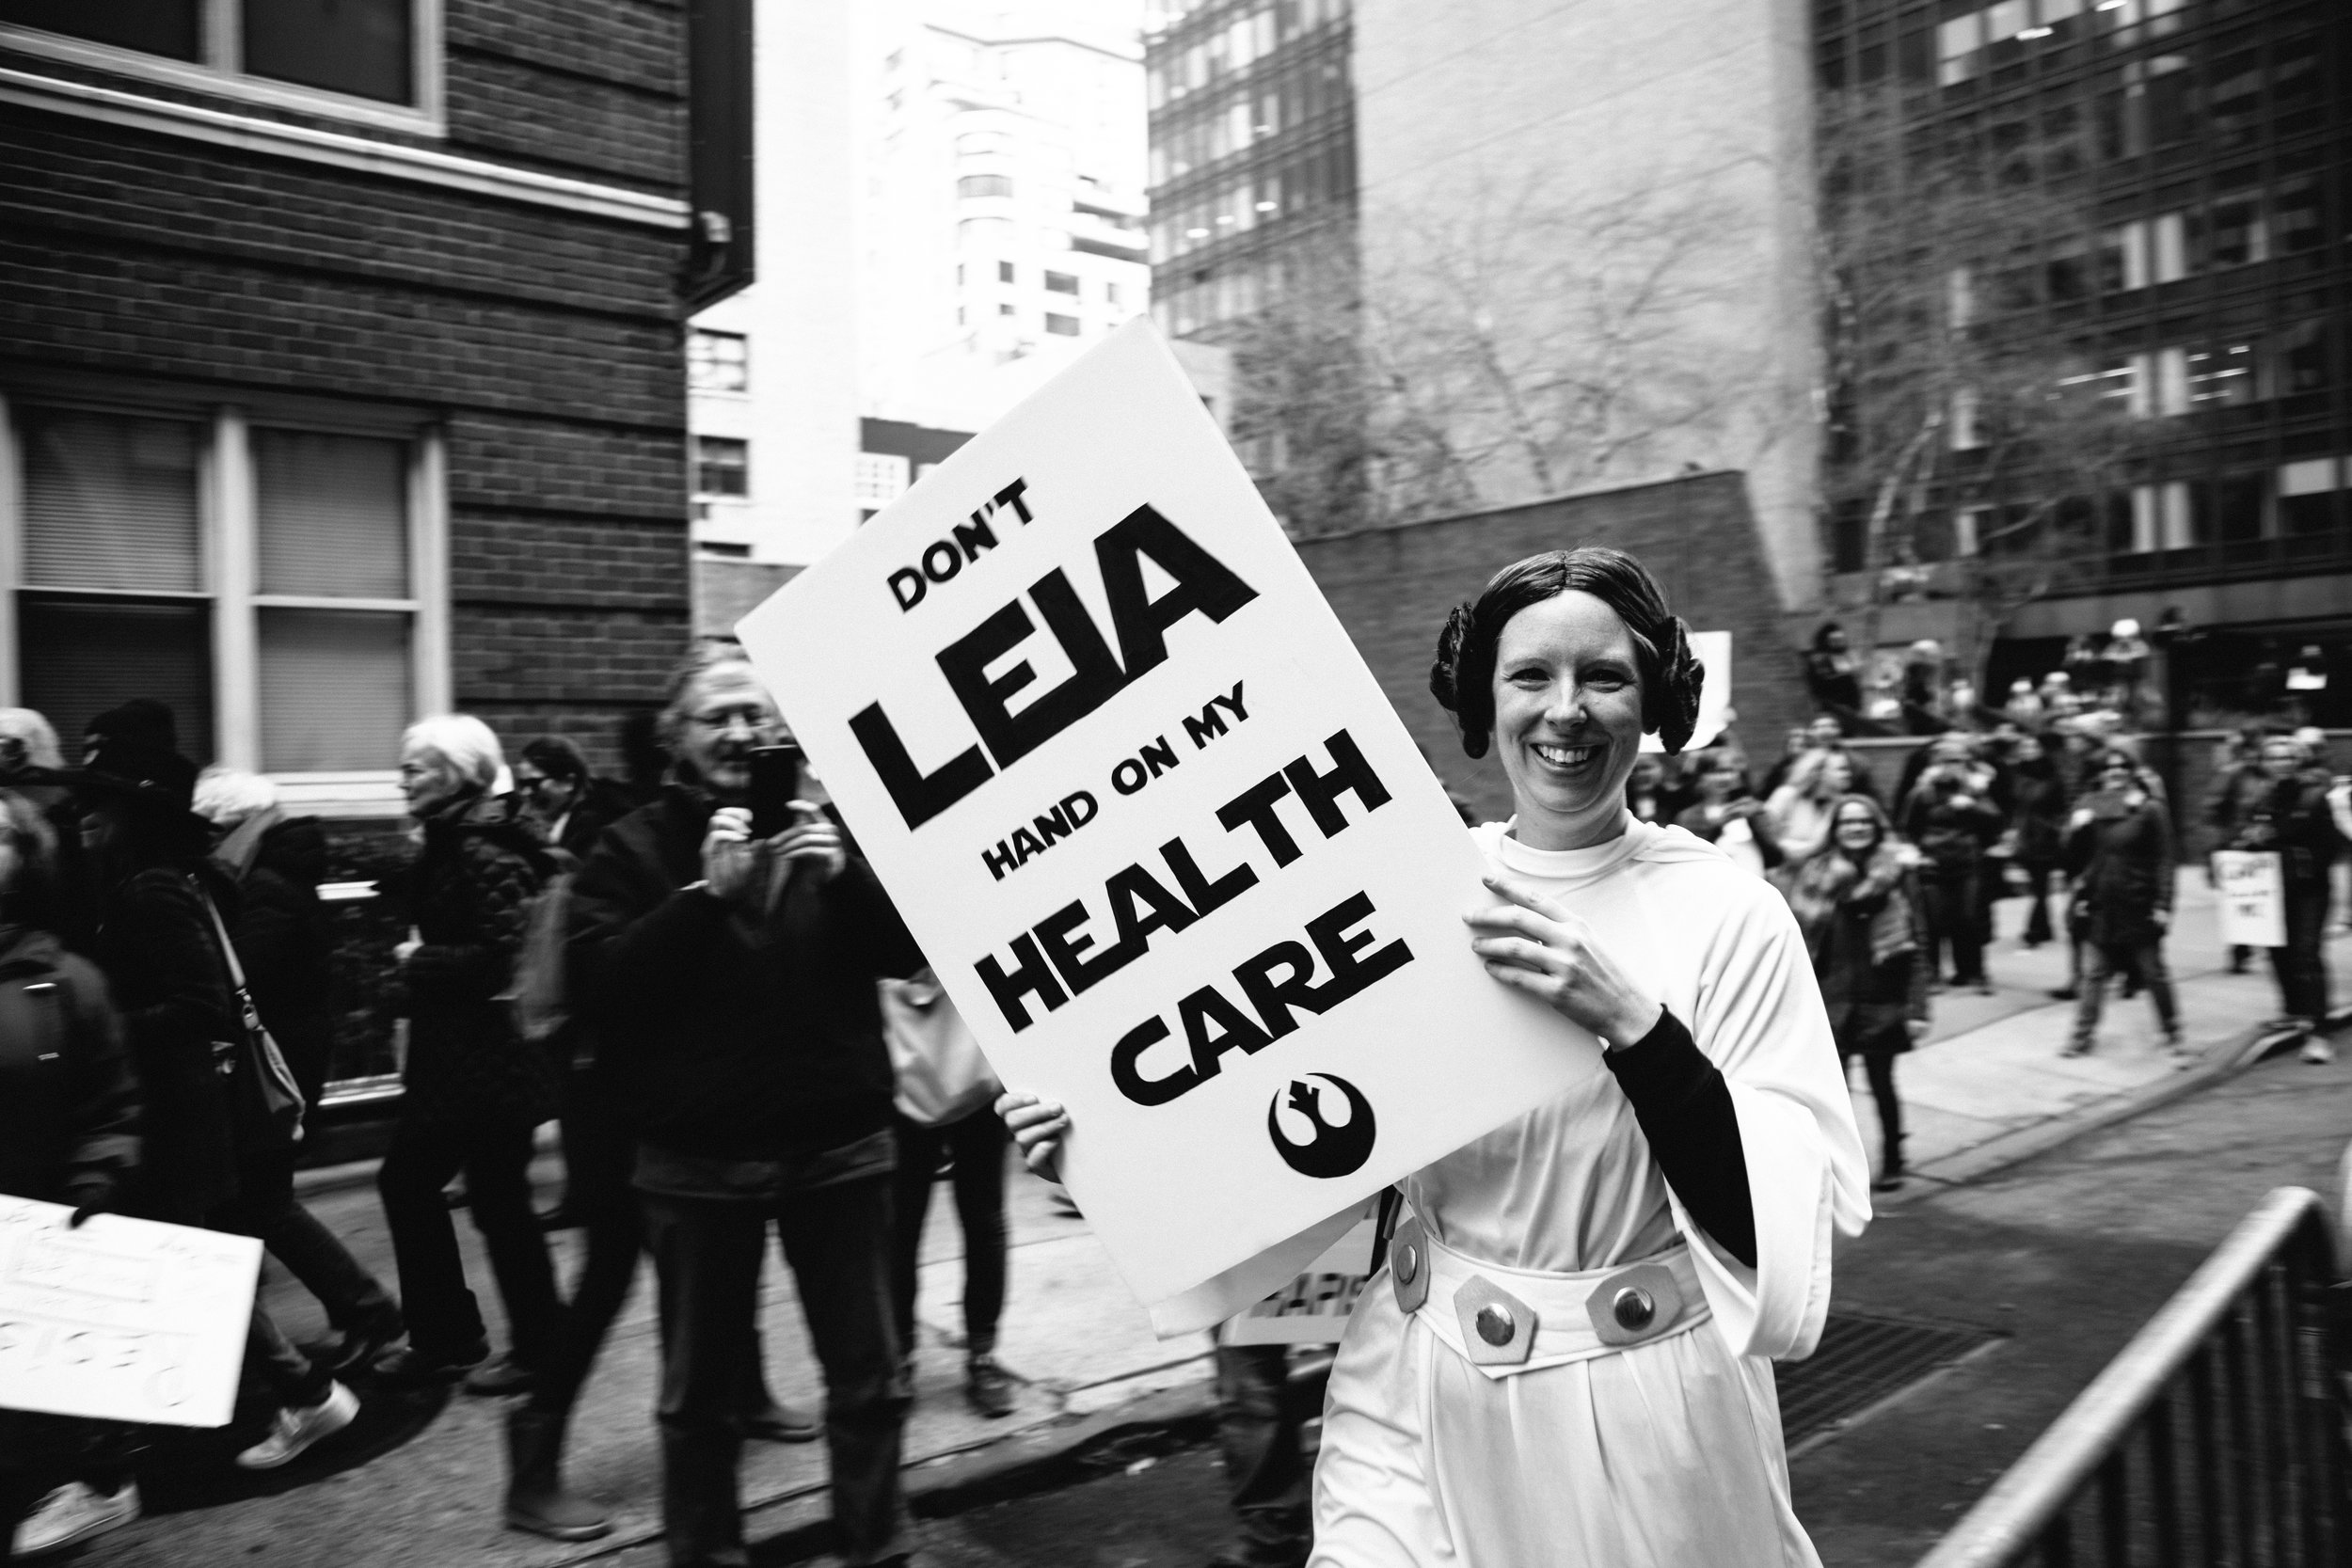 women's march on washington nyc protest signs-18.jpg